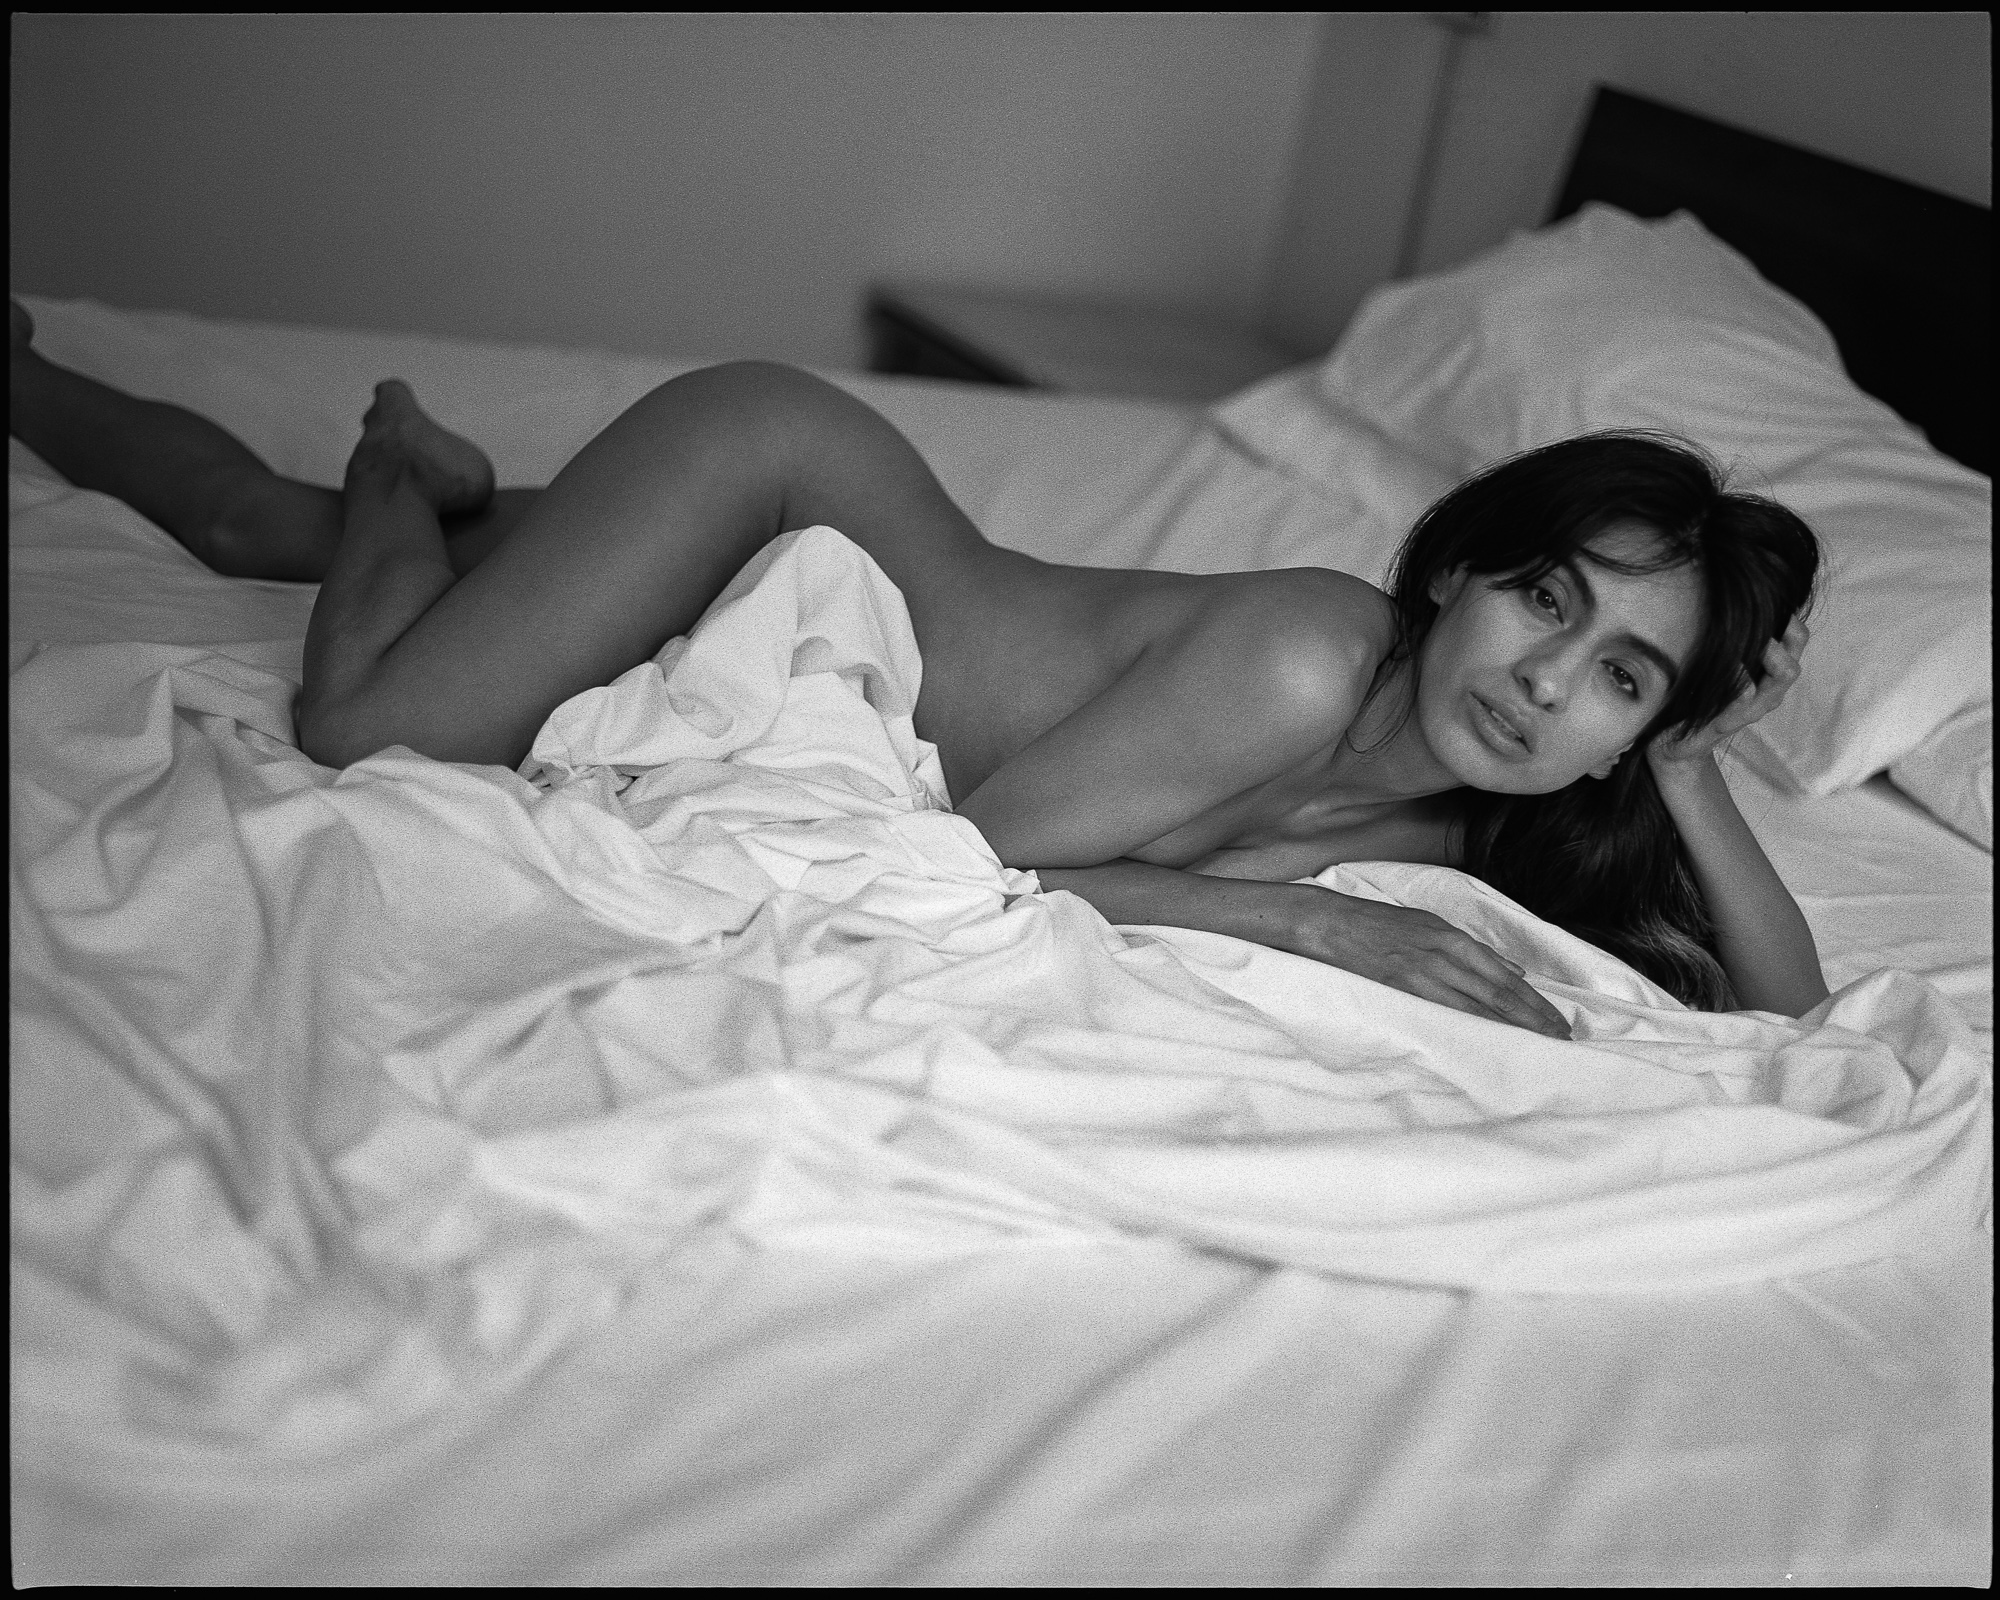 naked photograph of girl laying on bed